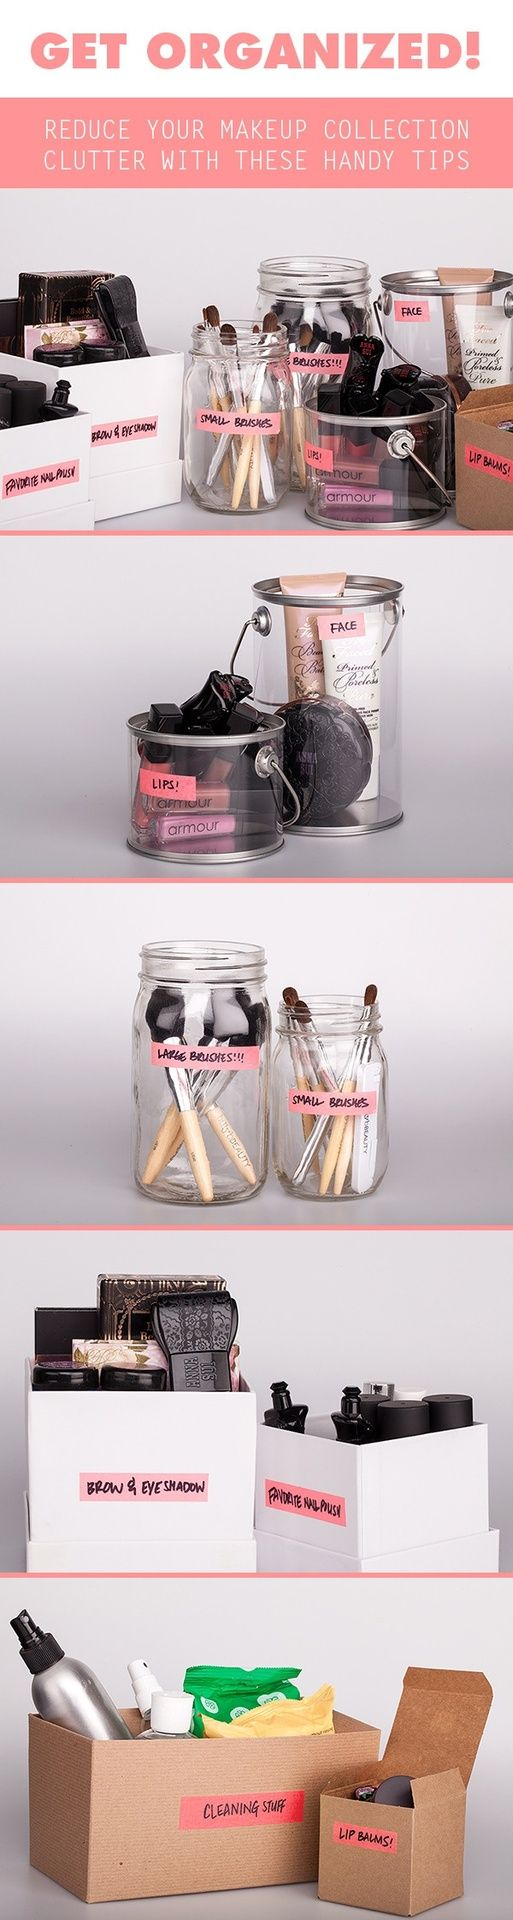 Get Organized! Cosmetics clutter and how to contain it